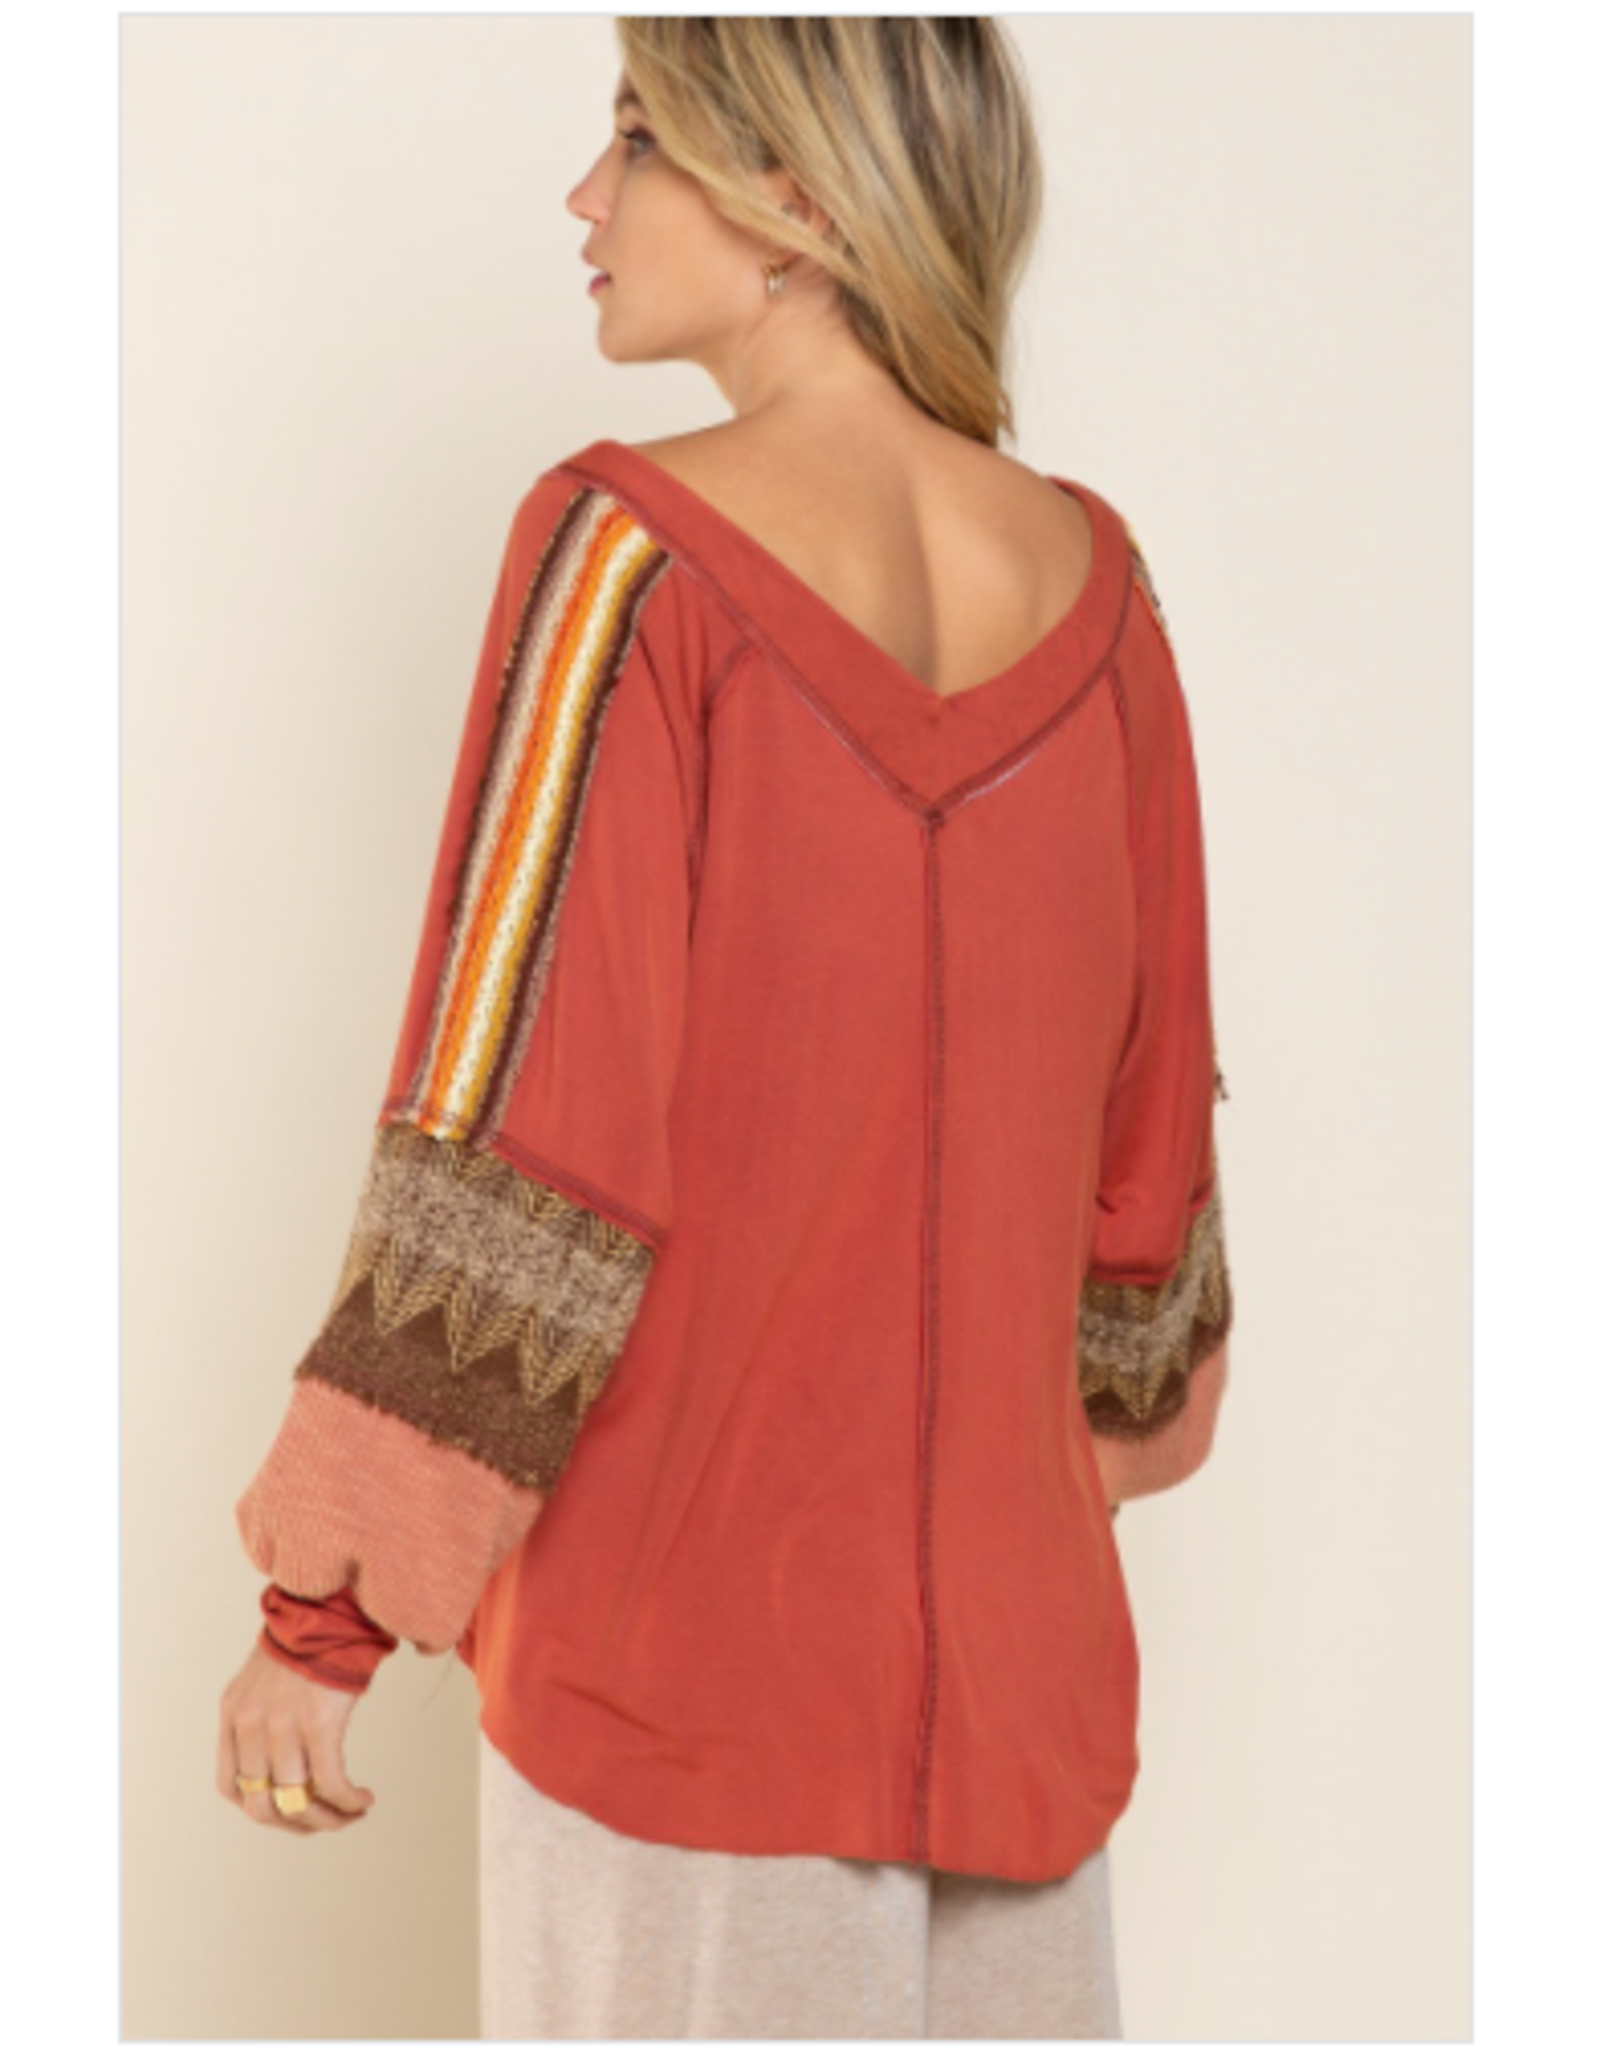 Sonia - Mixed print top (terracotta)